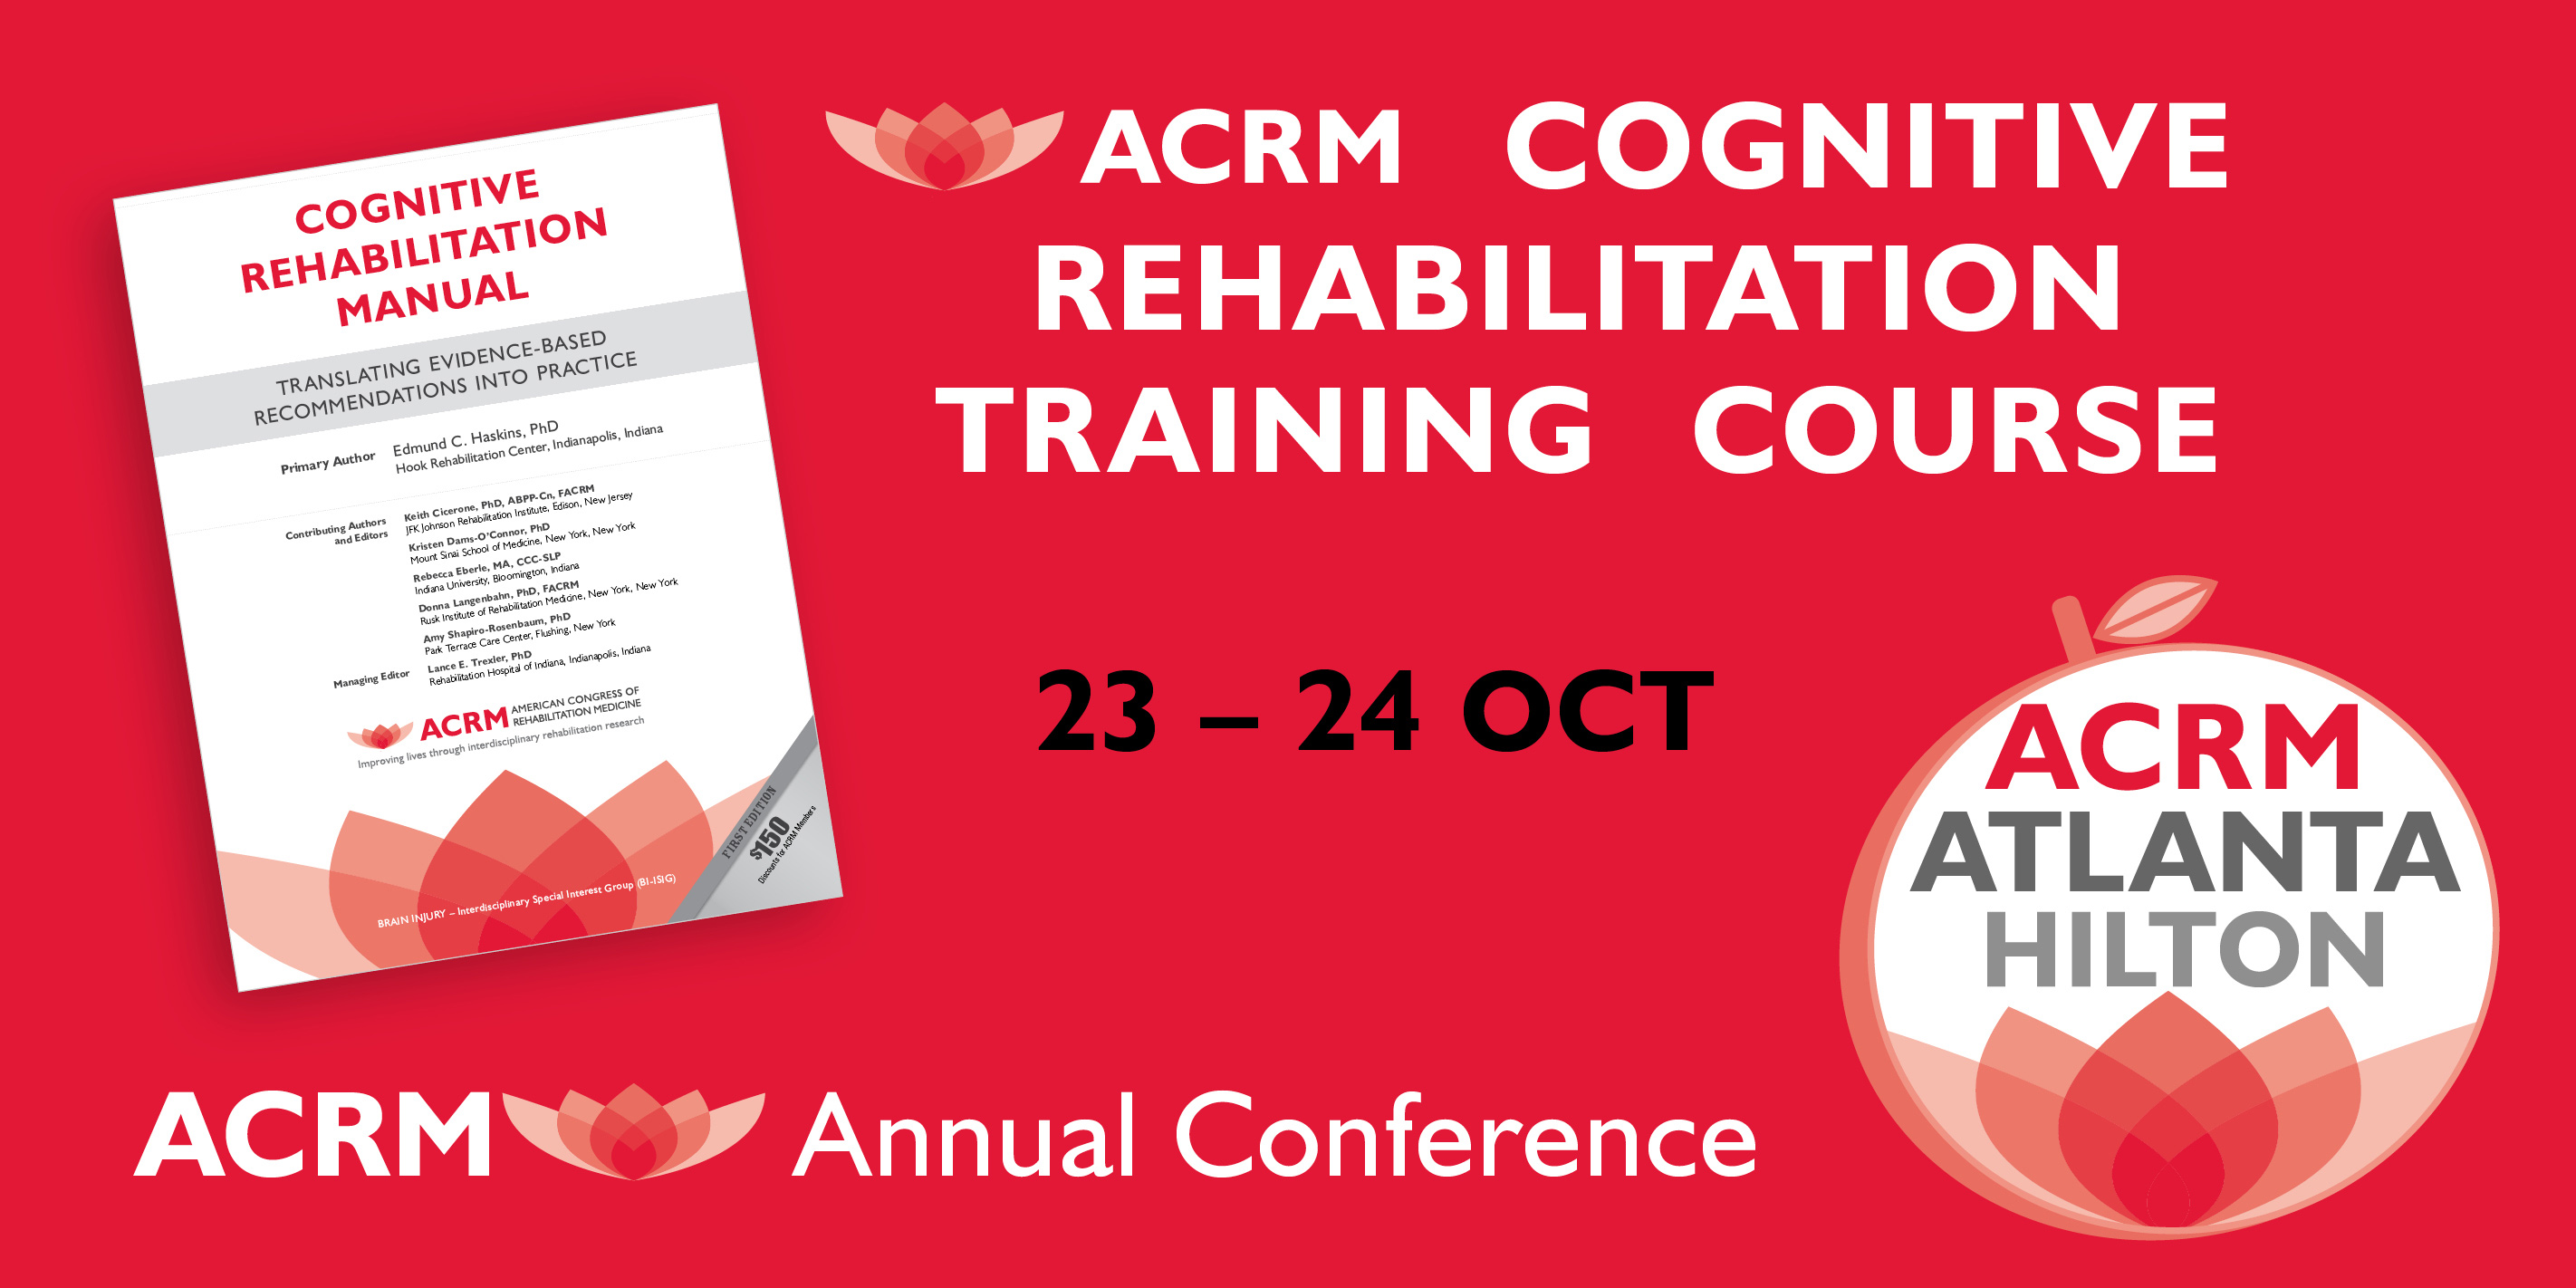 ACRM Conference: Cognitive Rehabilitation Training Course: 23 - 24 OCT 2017 / ATLANTA HILTON